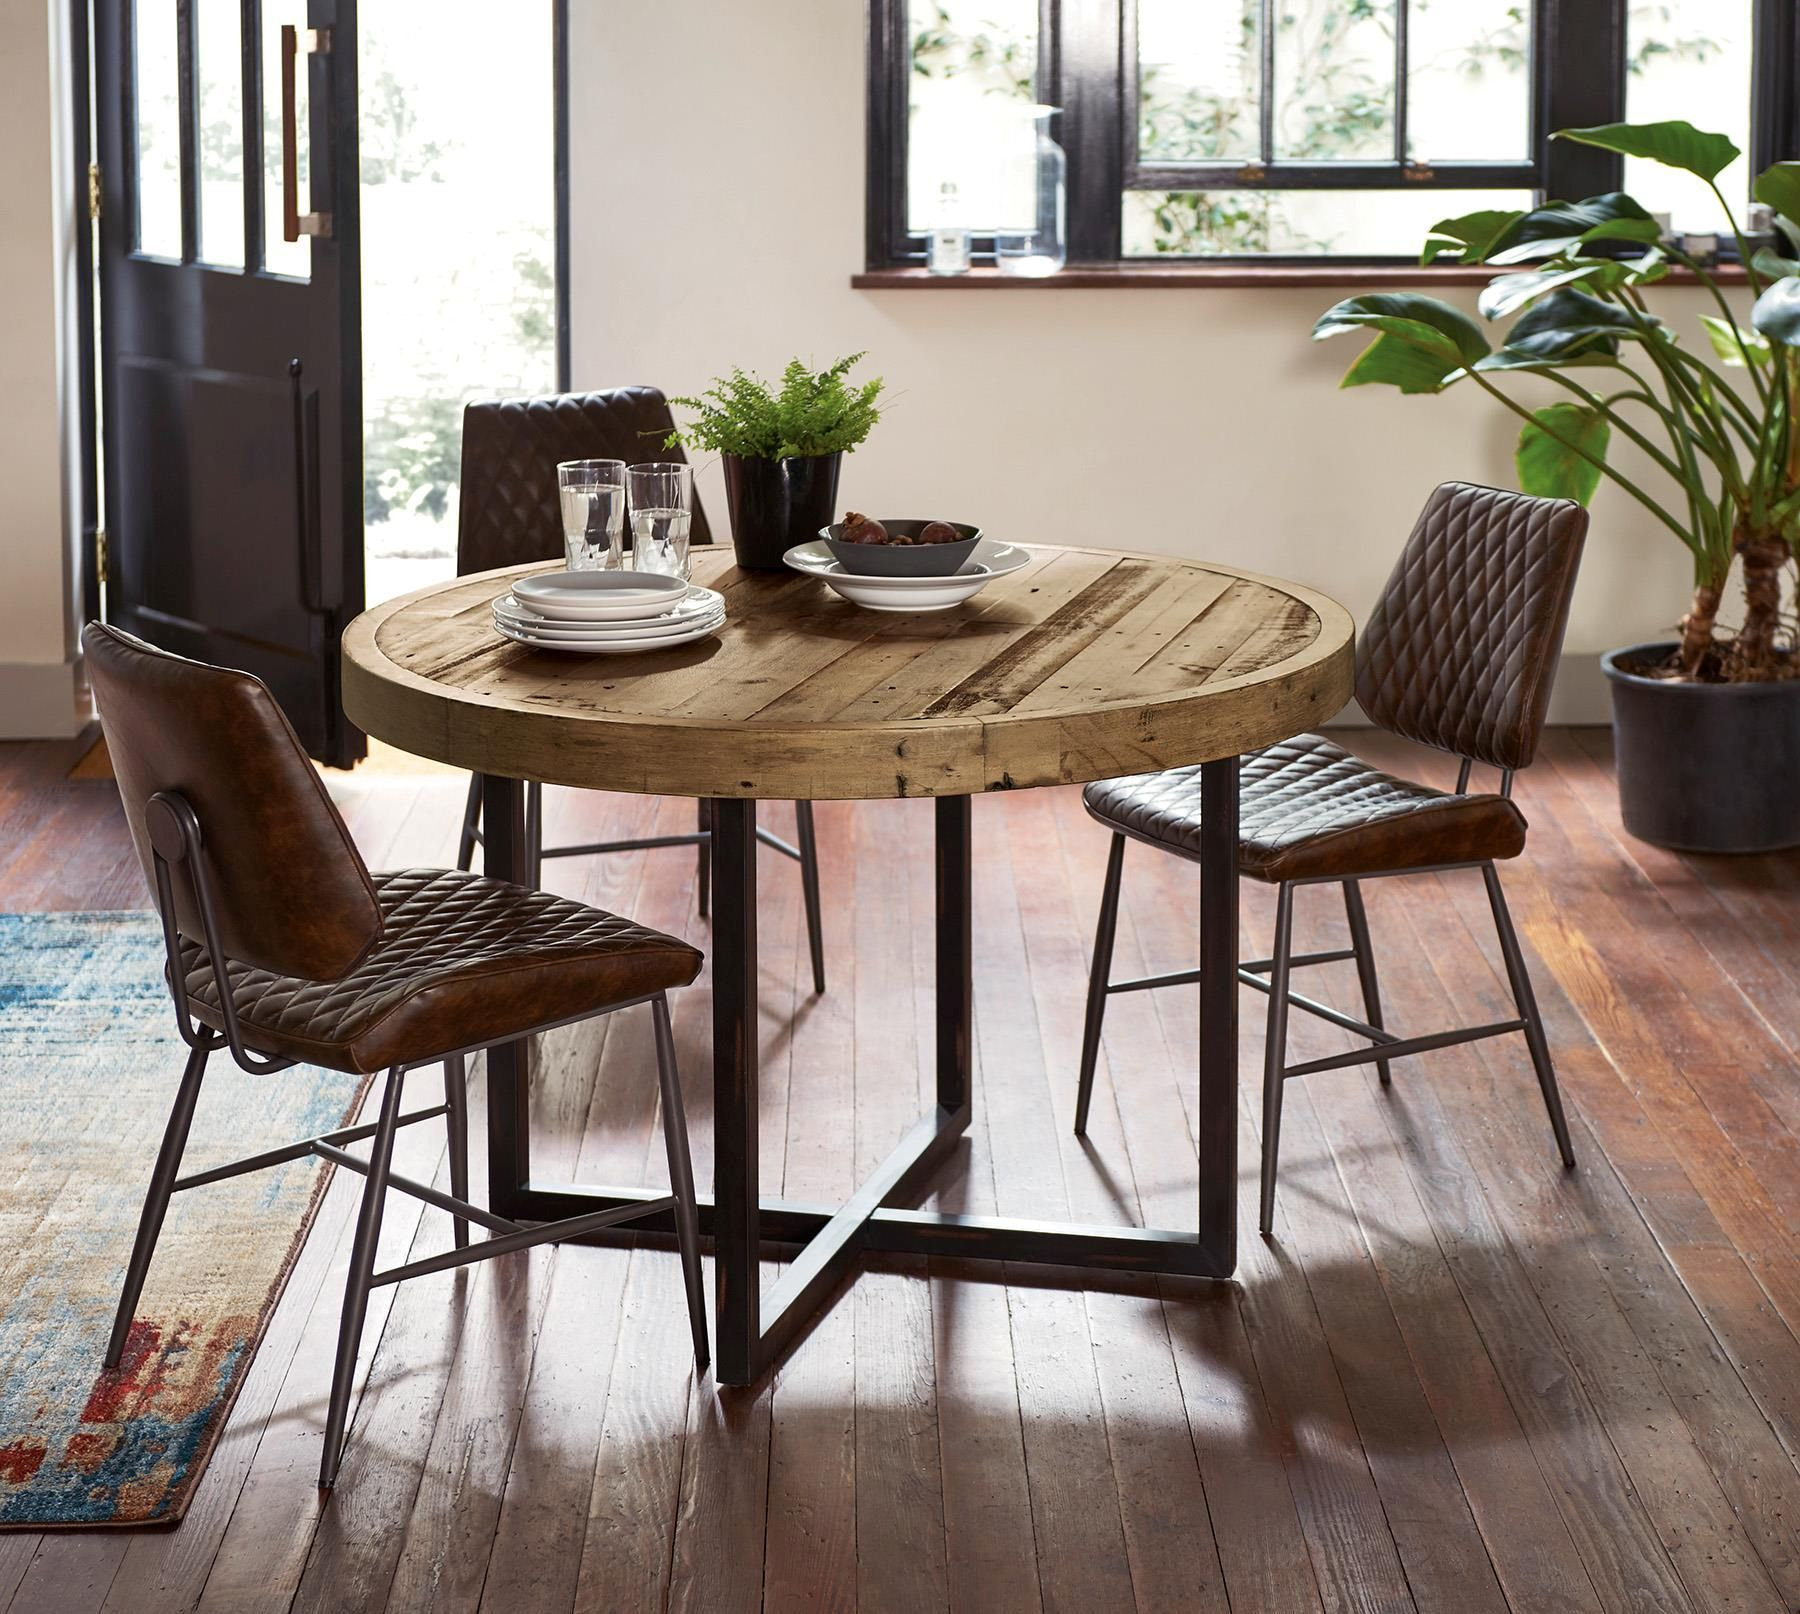 Blake Round Dining Table By Baker Furniture From The Next Uk Online